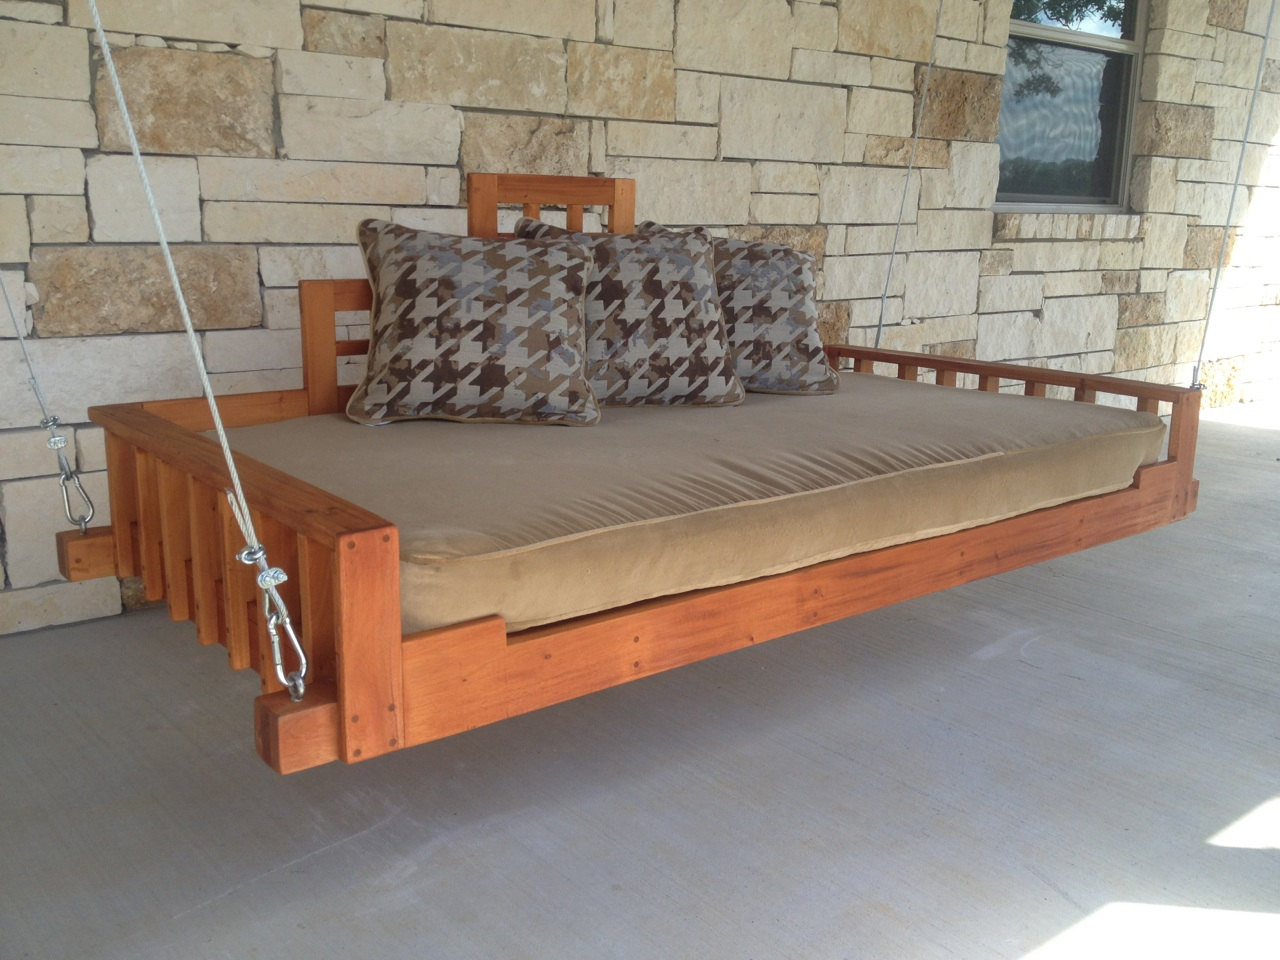 Plans Mattress Crib Rattan Round Porch Outdoor Daybed Regarding Country Style Hanging Daybed Swings (View 22 of 25)